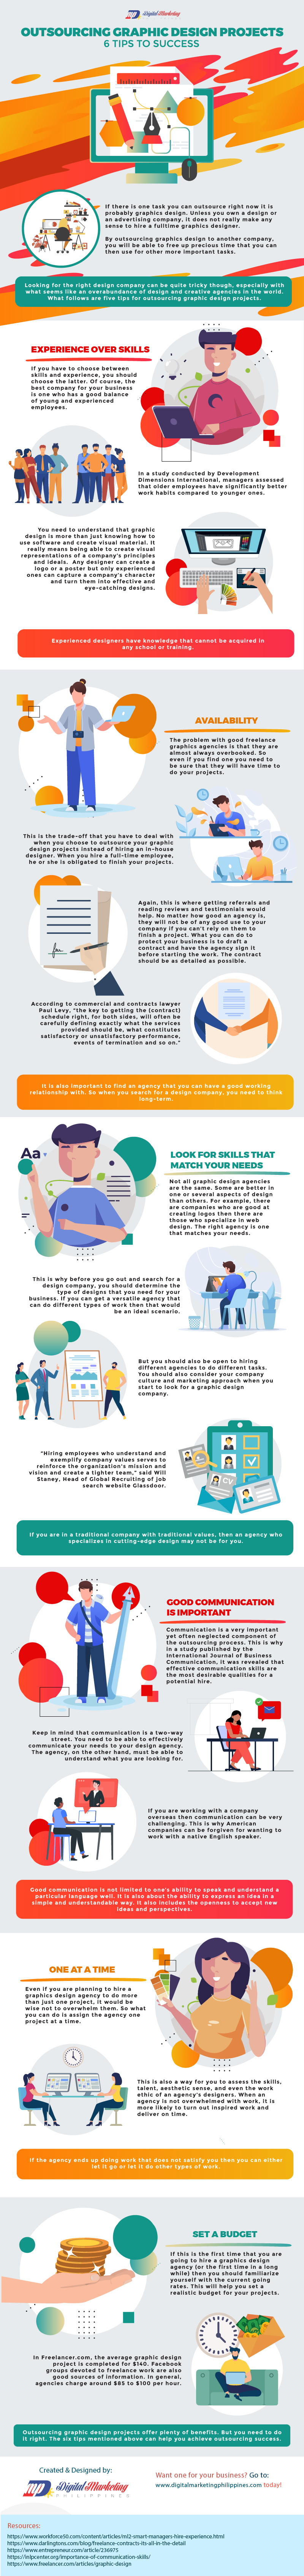 Outsourcing Graphic Design Projects – 6 Tips to Success [Infographic]